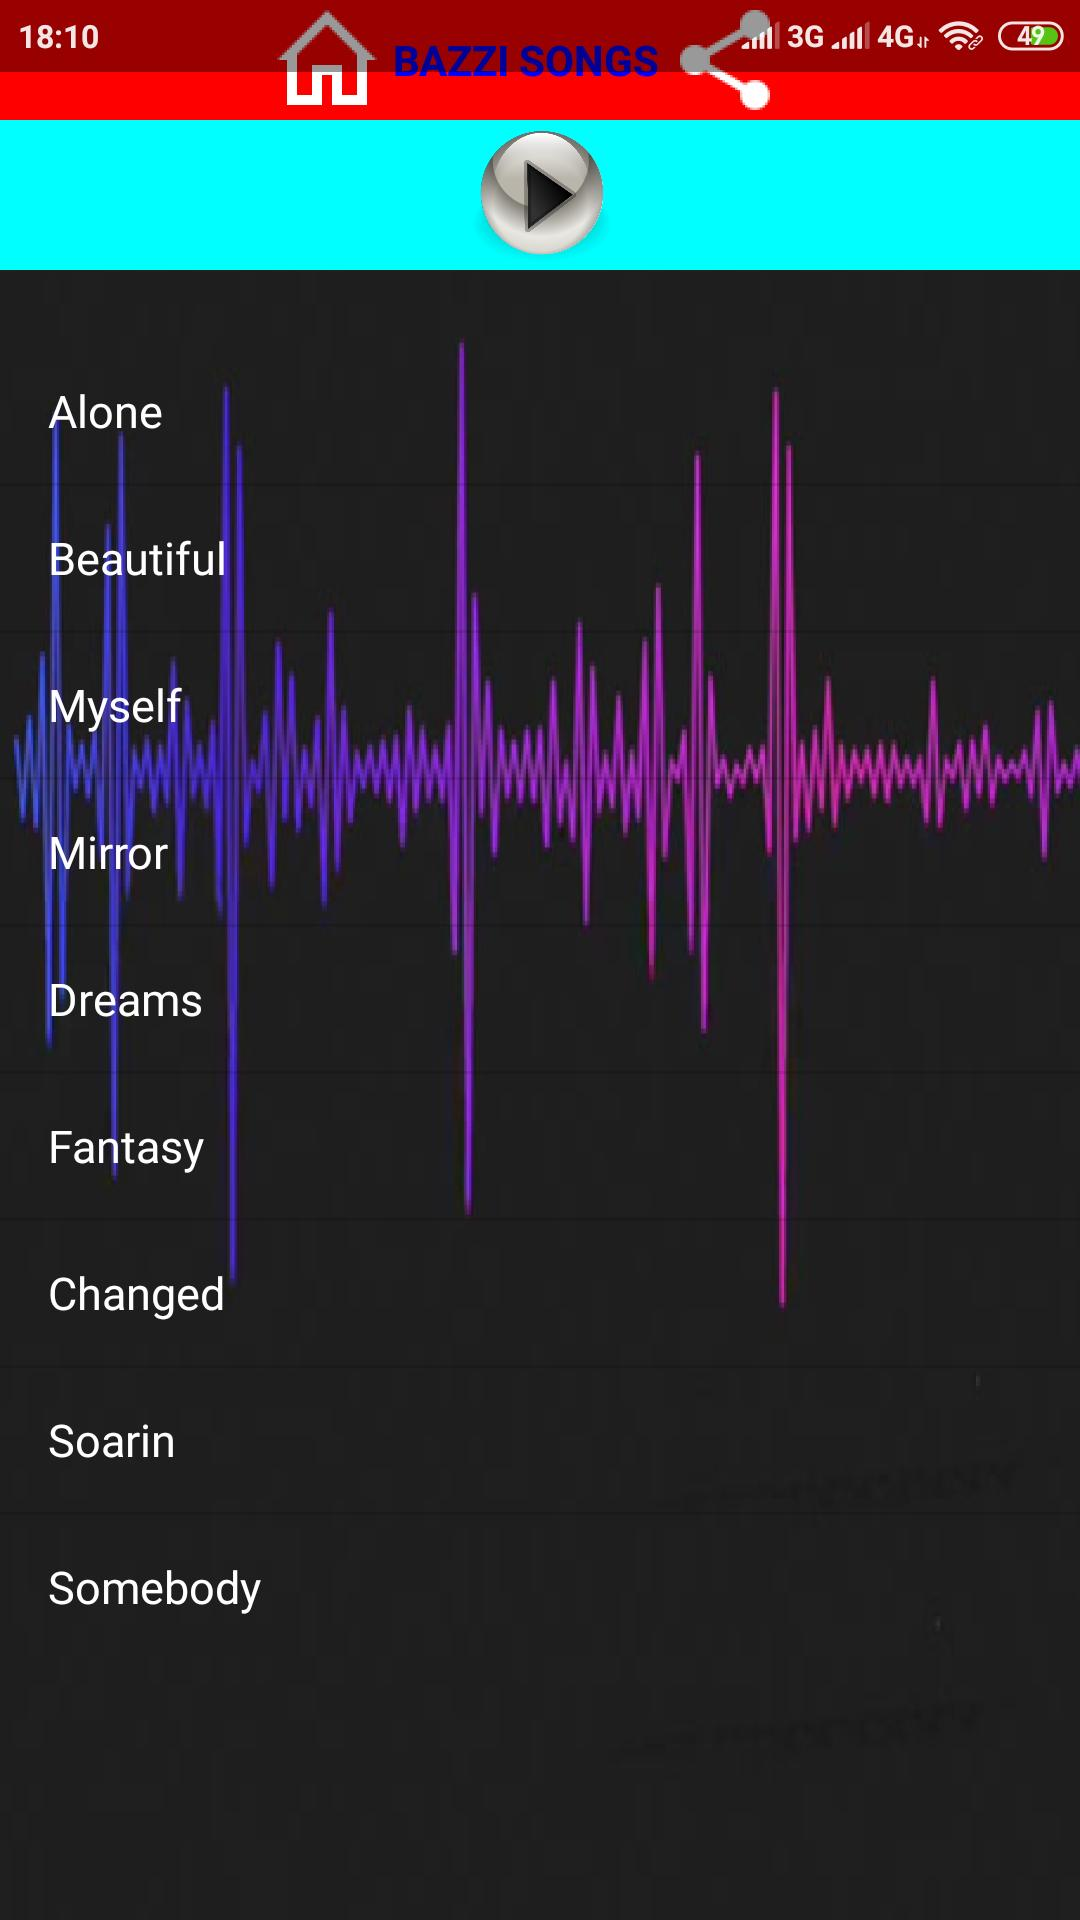 All Bazzi - Fantasy Songs for Android - APK Download